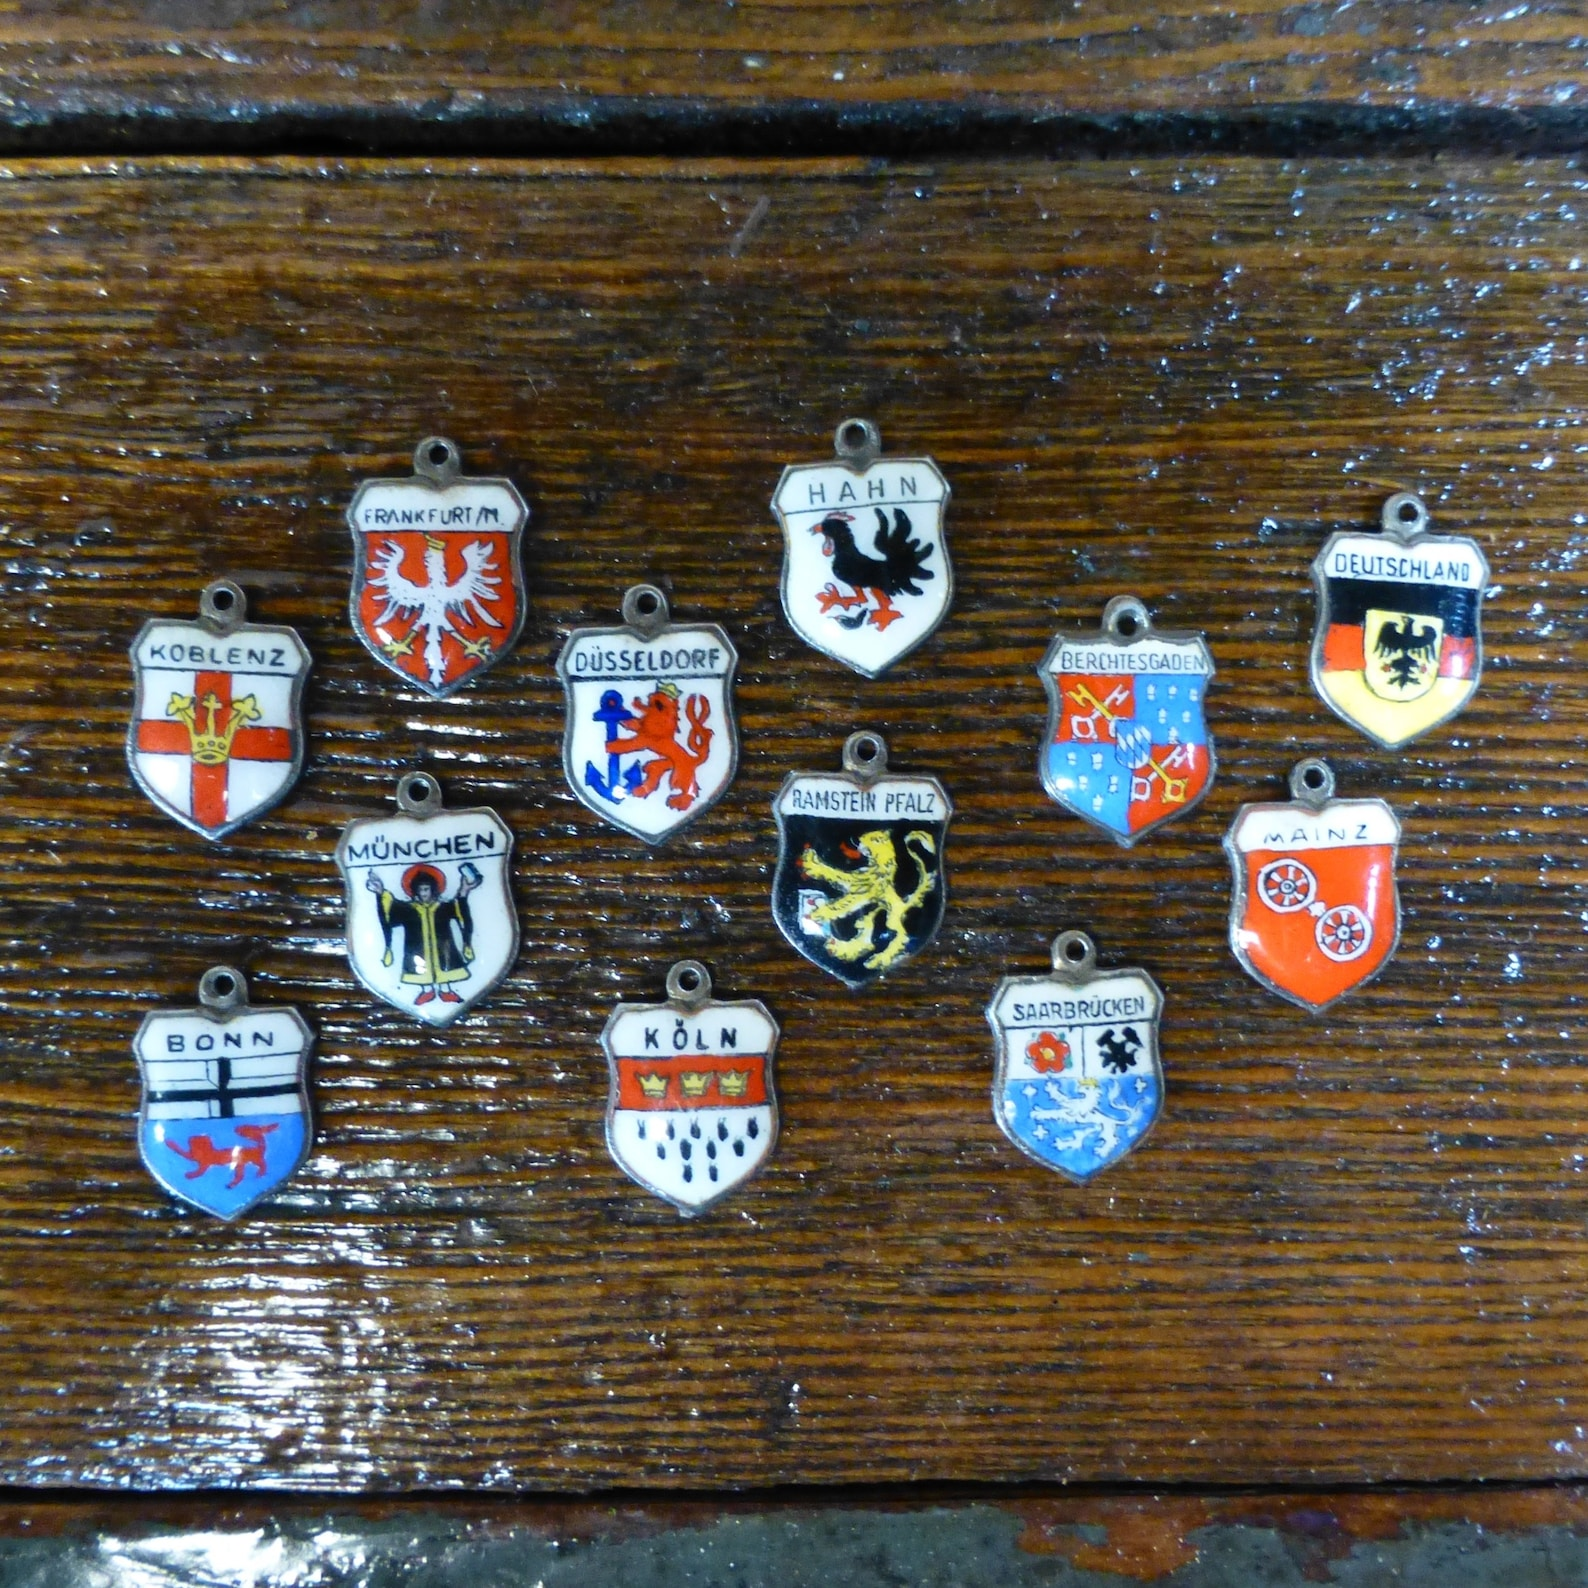 Vintage Germany Souvenir Travel Charms - Coat of Arms Shield Charm in 800 Sterling Silver - REU Fritz Reu and Co.